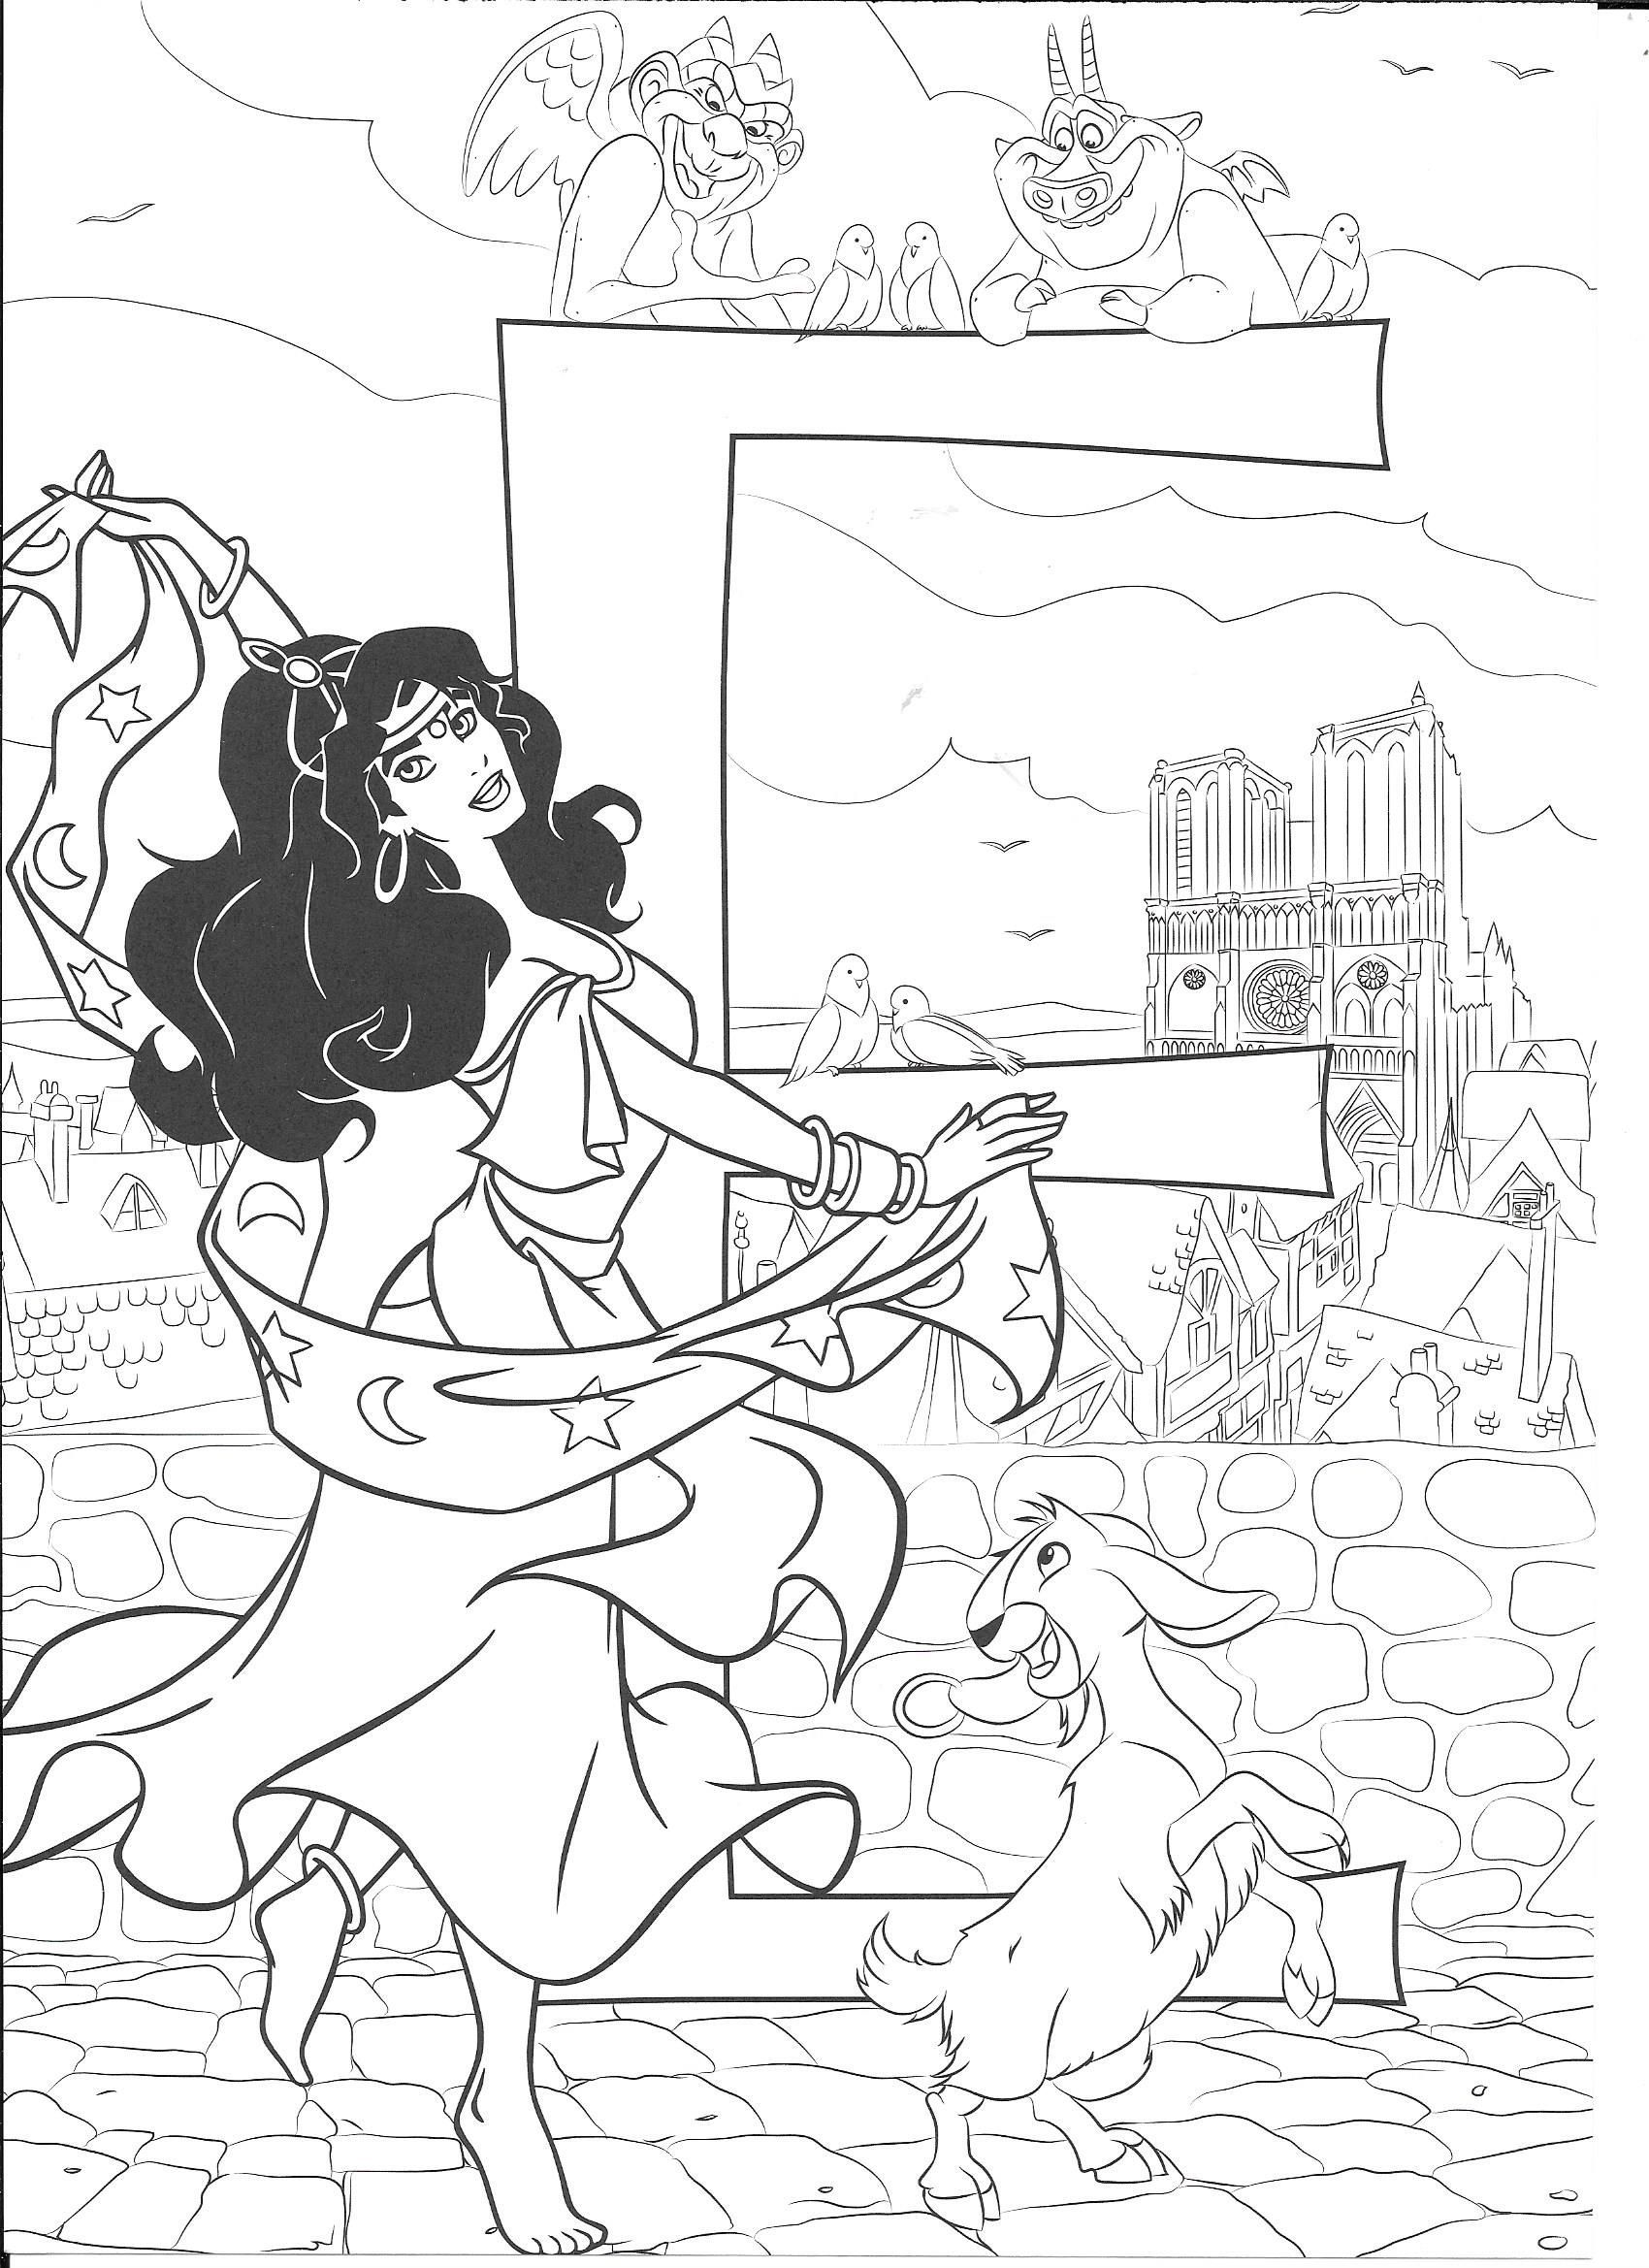 Great Free Coloring Sheets Disney Style It S Really No Key That Colour Publications Intended Fo In 2021 Disney Coloring Sheets Abc Coloring Pages Disney Coloring Pages